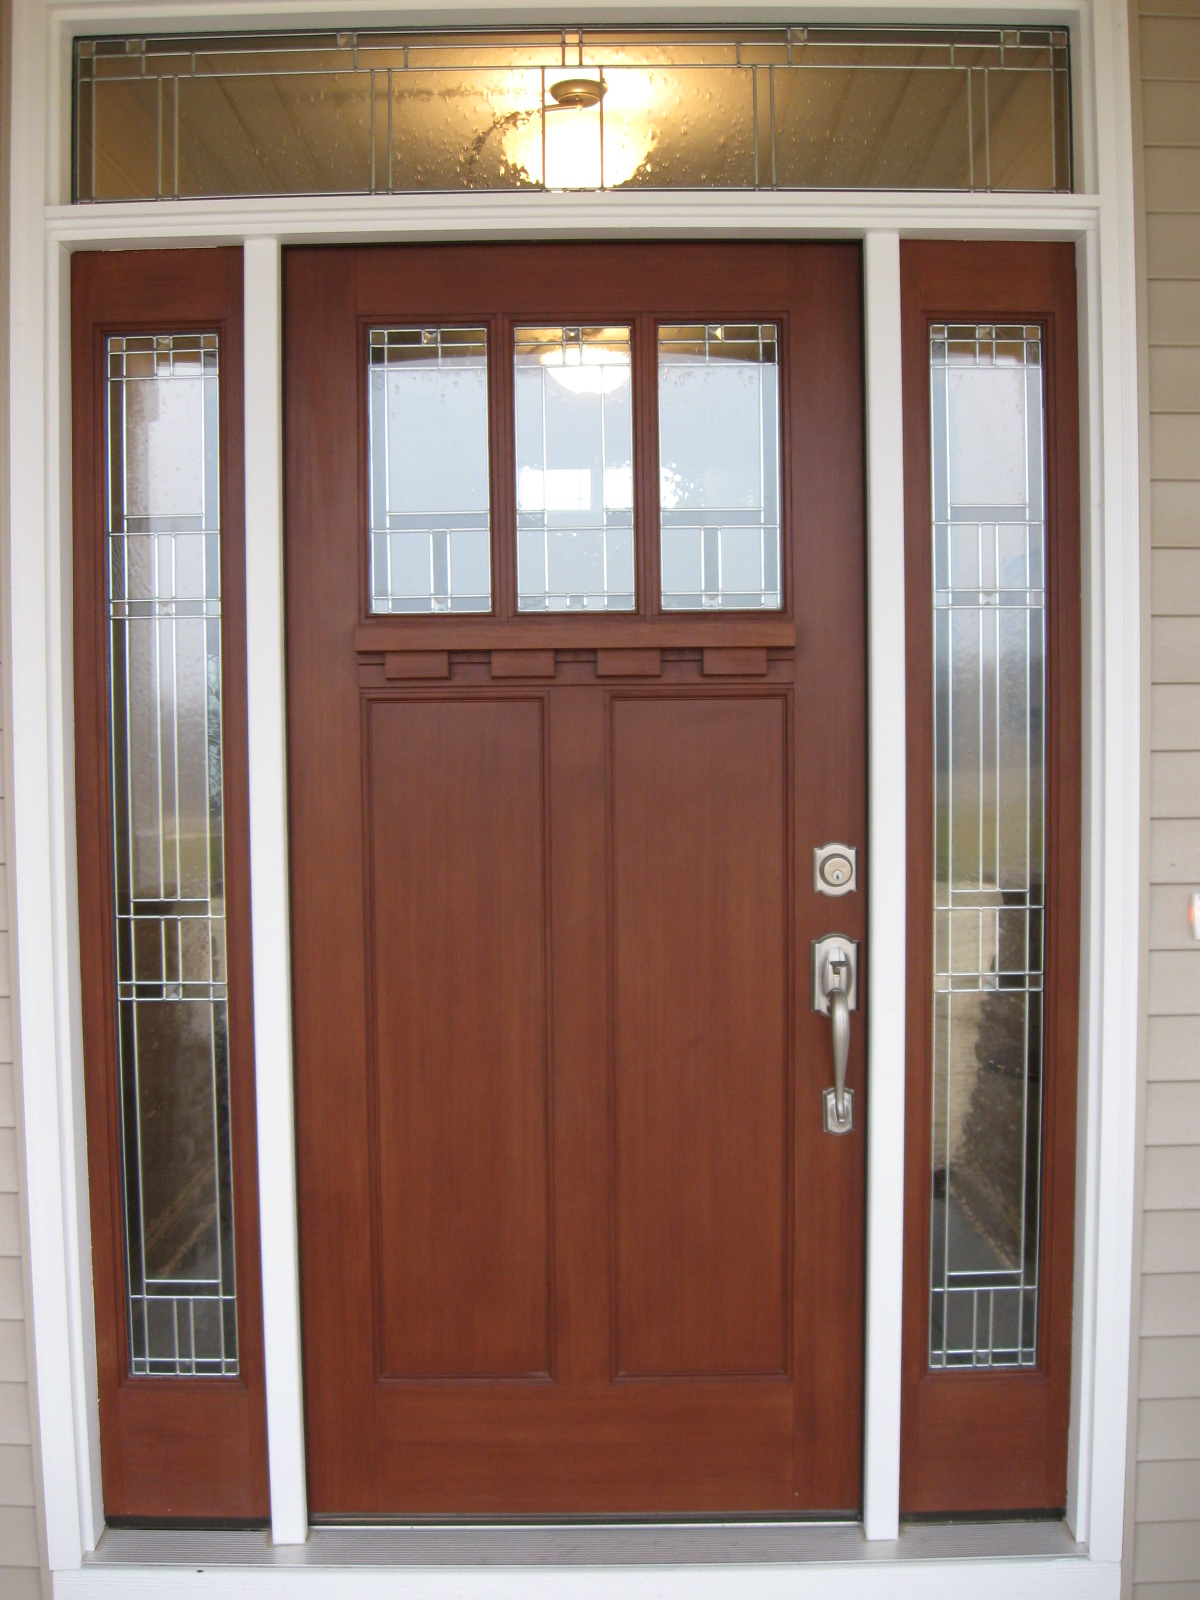 How to install a prehung door properly in your new home for Entry door installation